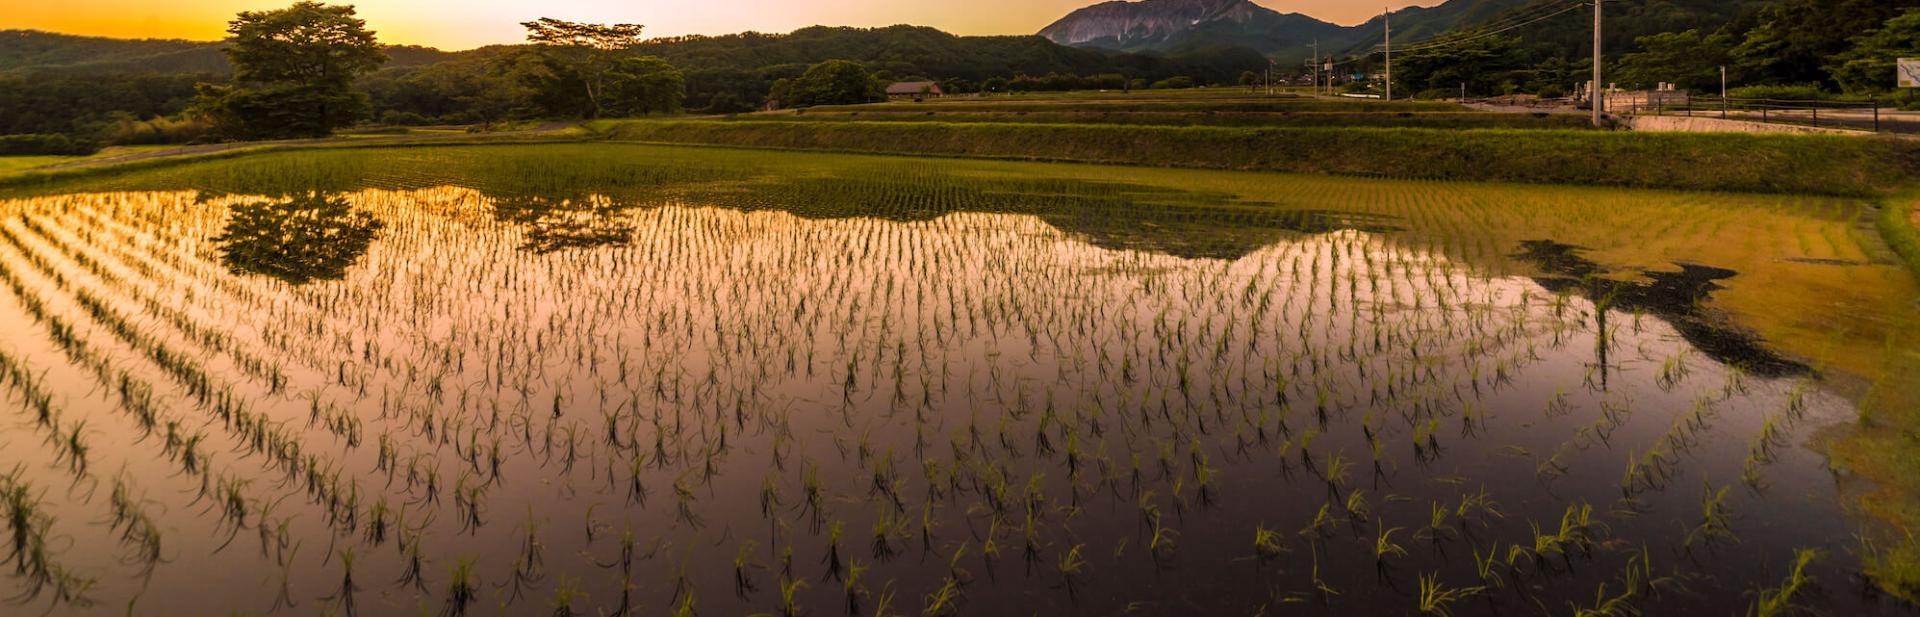 View of a rice paddy at dusk.